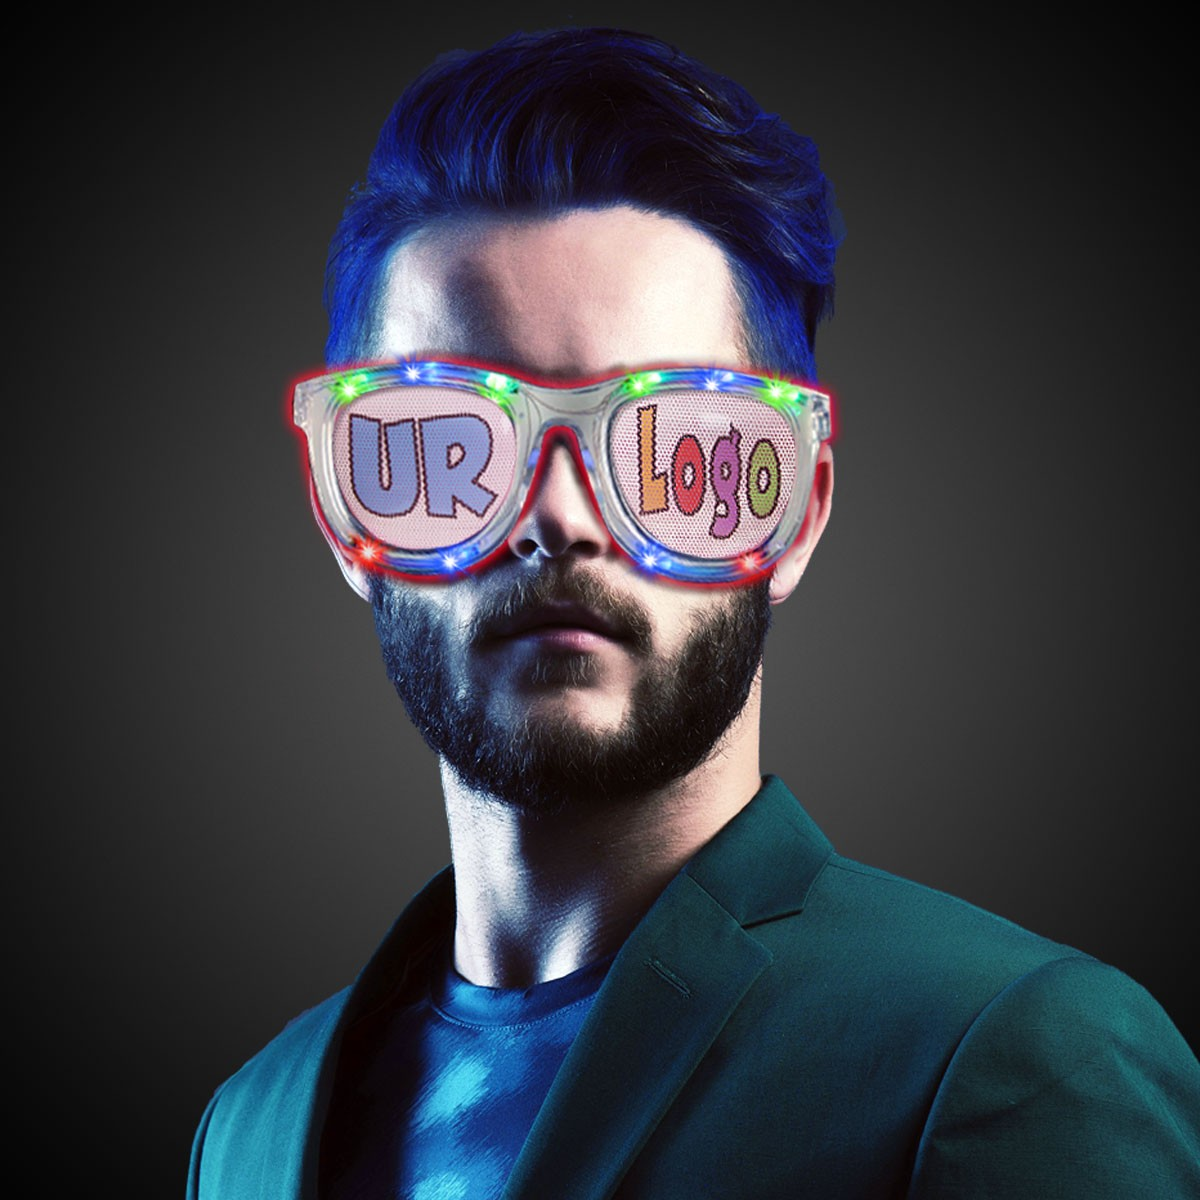 LED Jumbo Billboard Sunglasses